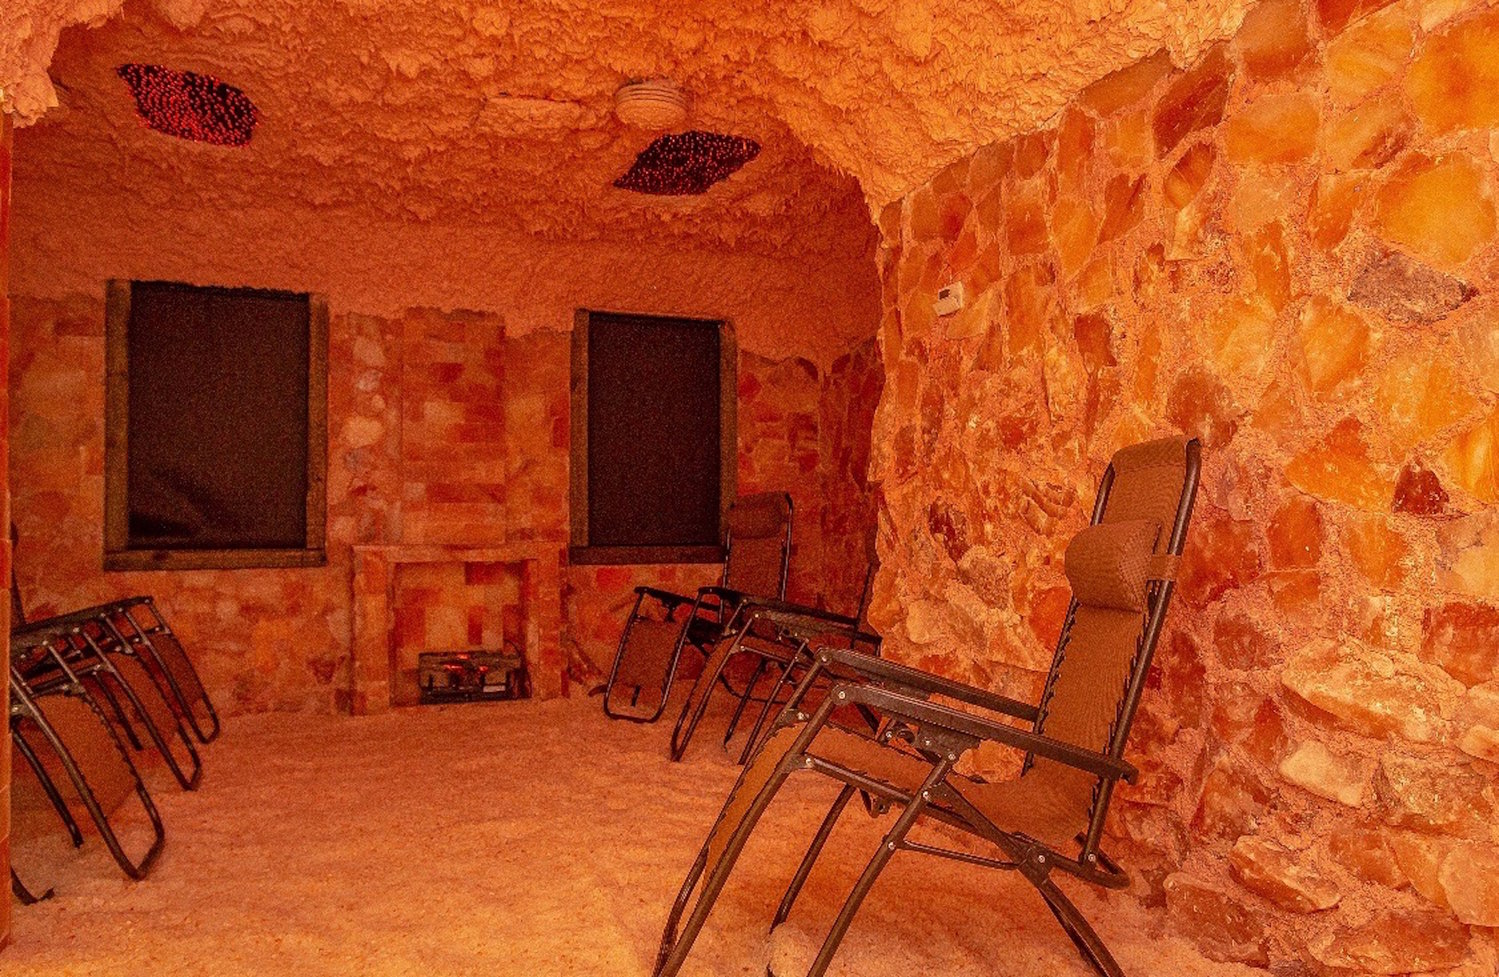 Clients are welcome to rent out this eight-person salt room for $250.